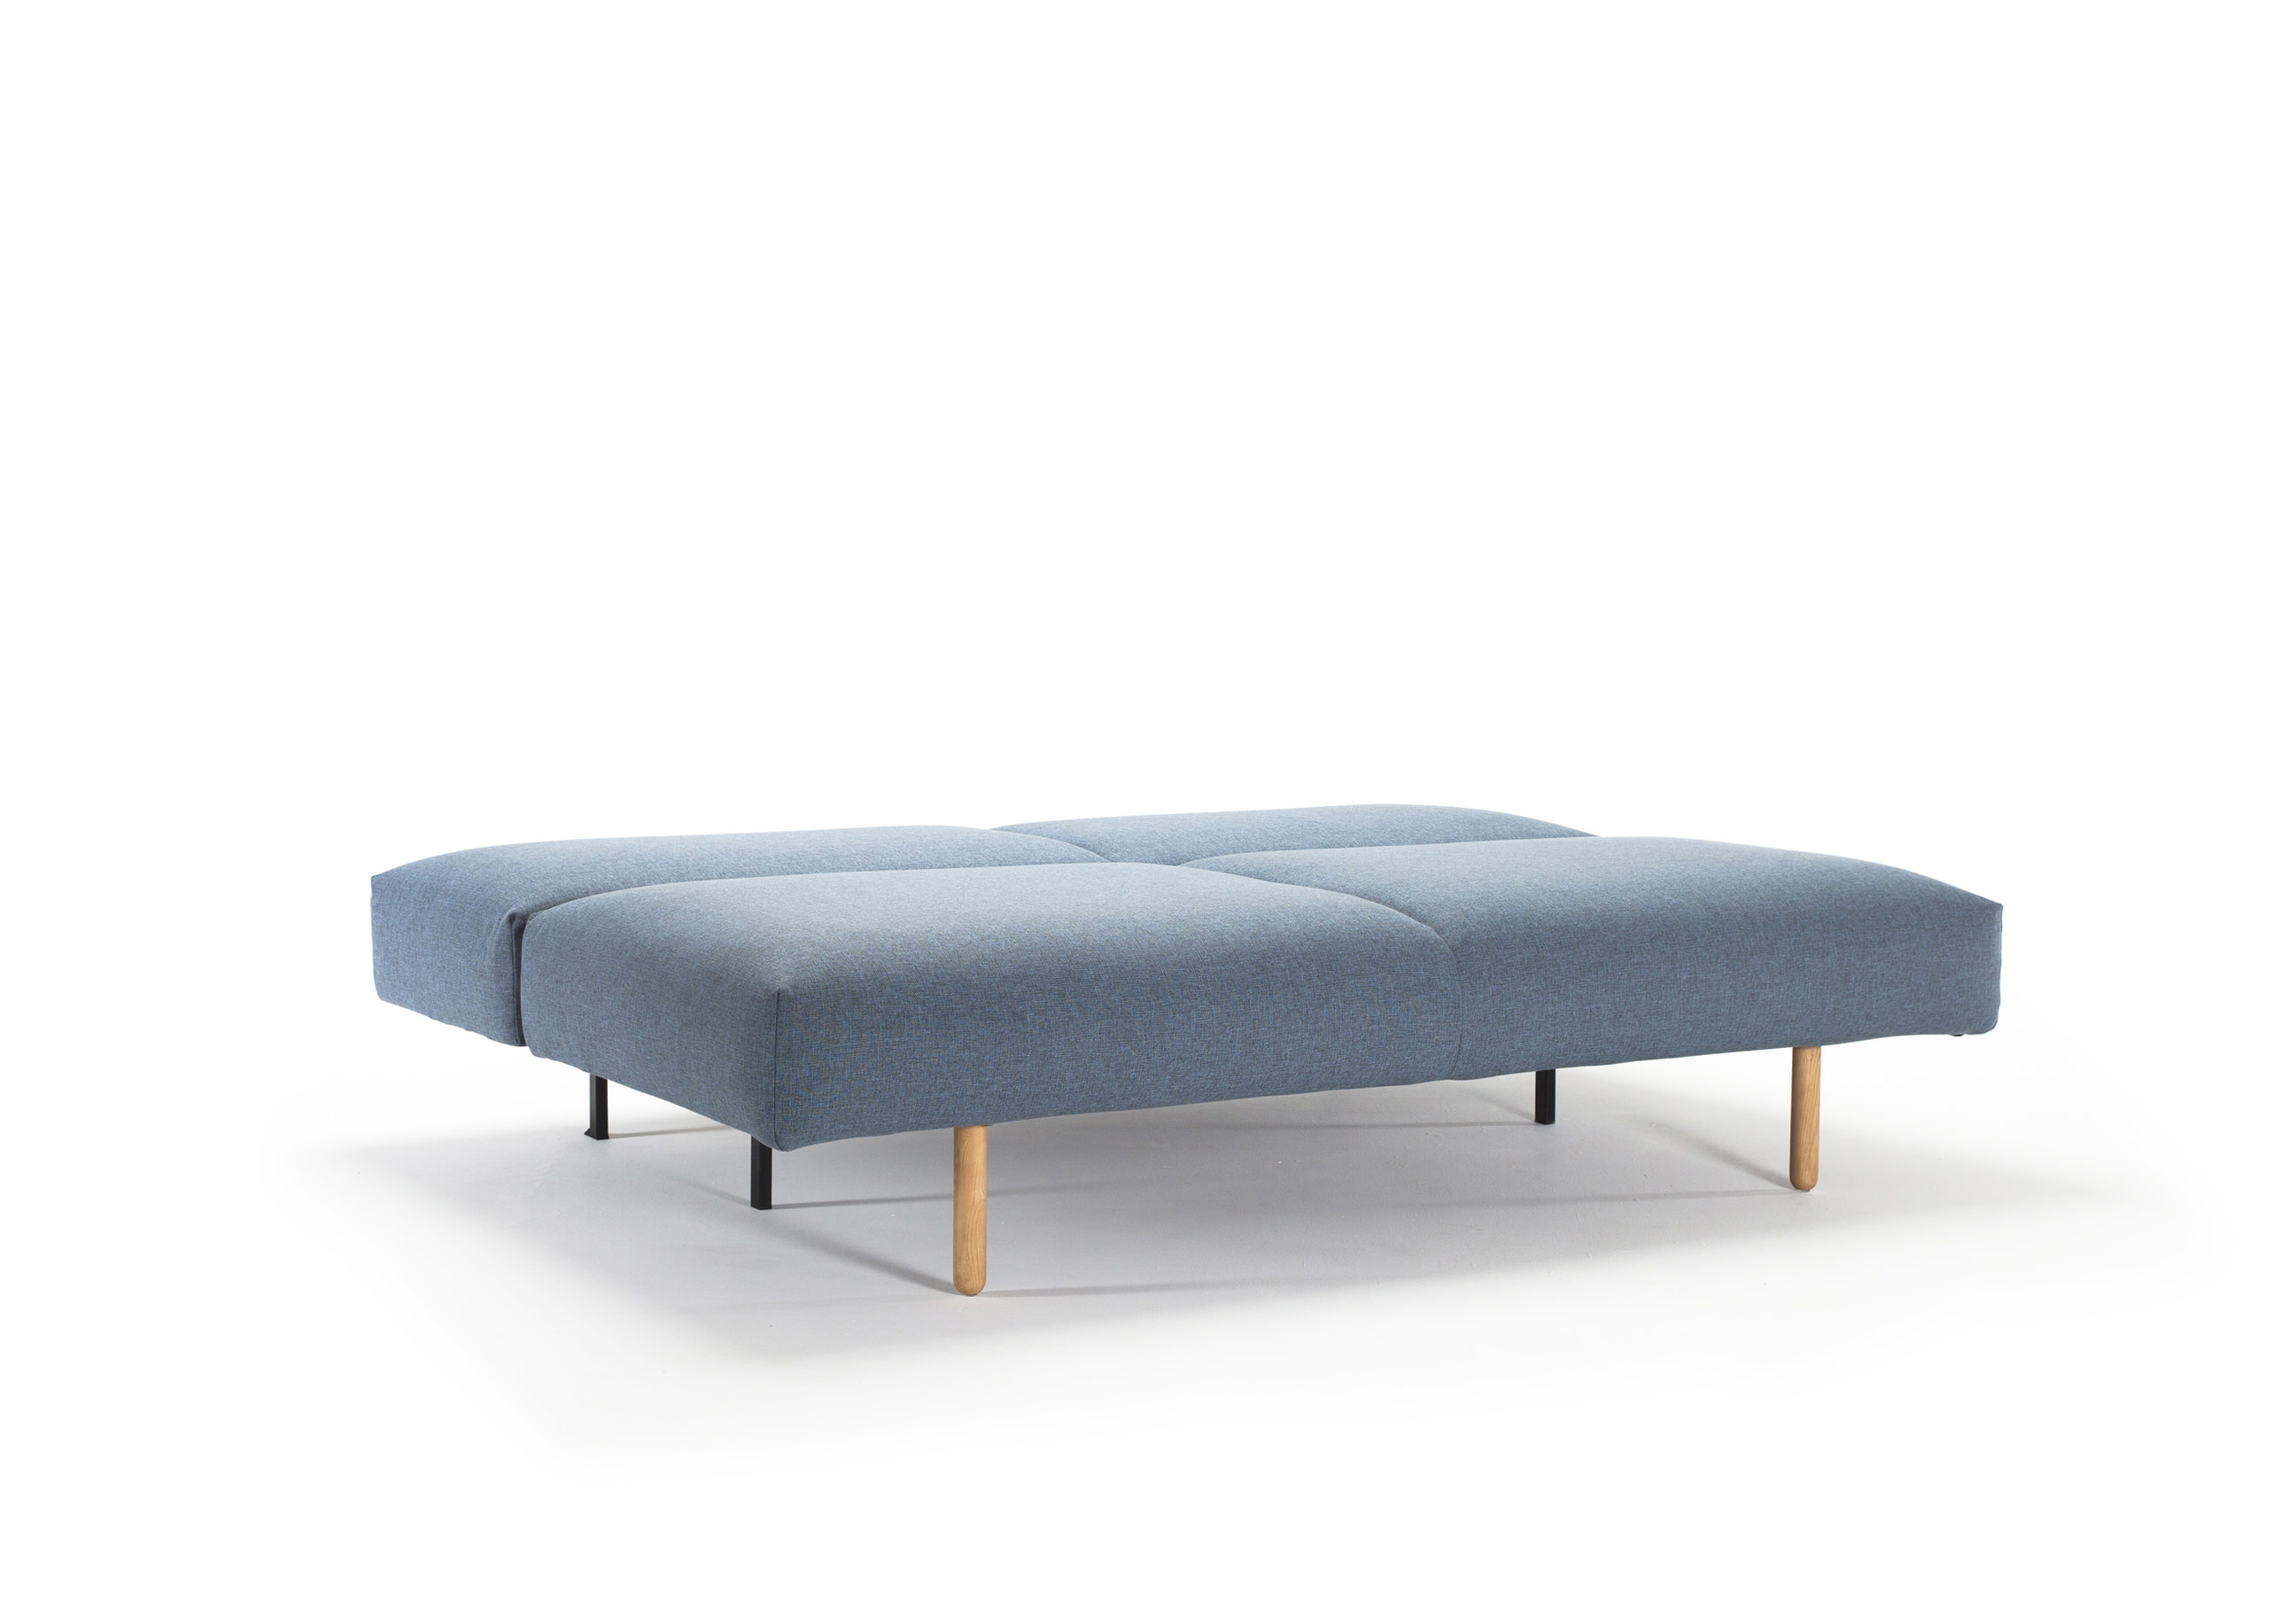 Frode Sofa Mixed Dance Light Blue by Innovation : Frodesofastem20legs525mixed dance light blue 6 from www.functionalfurniturenyc.com size 2592 x 1814 jpeg 301kB